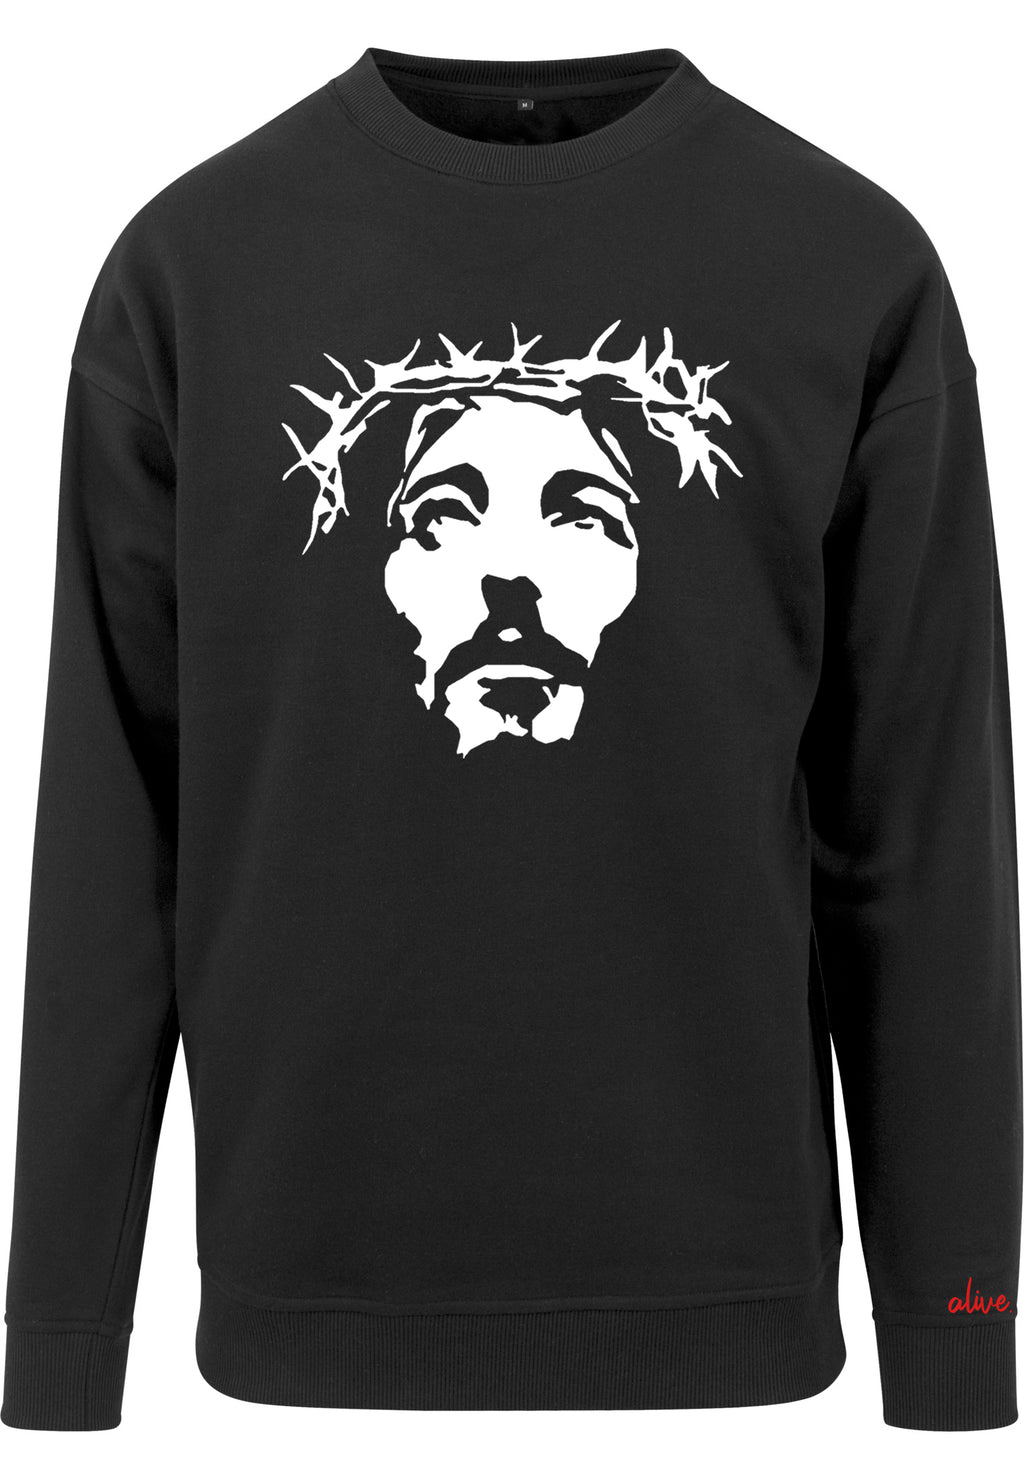 THE SAVIOUR Sweatshirt (Black with White)